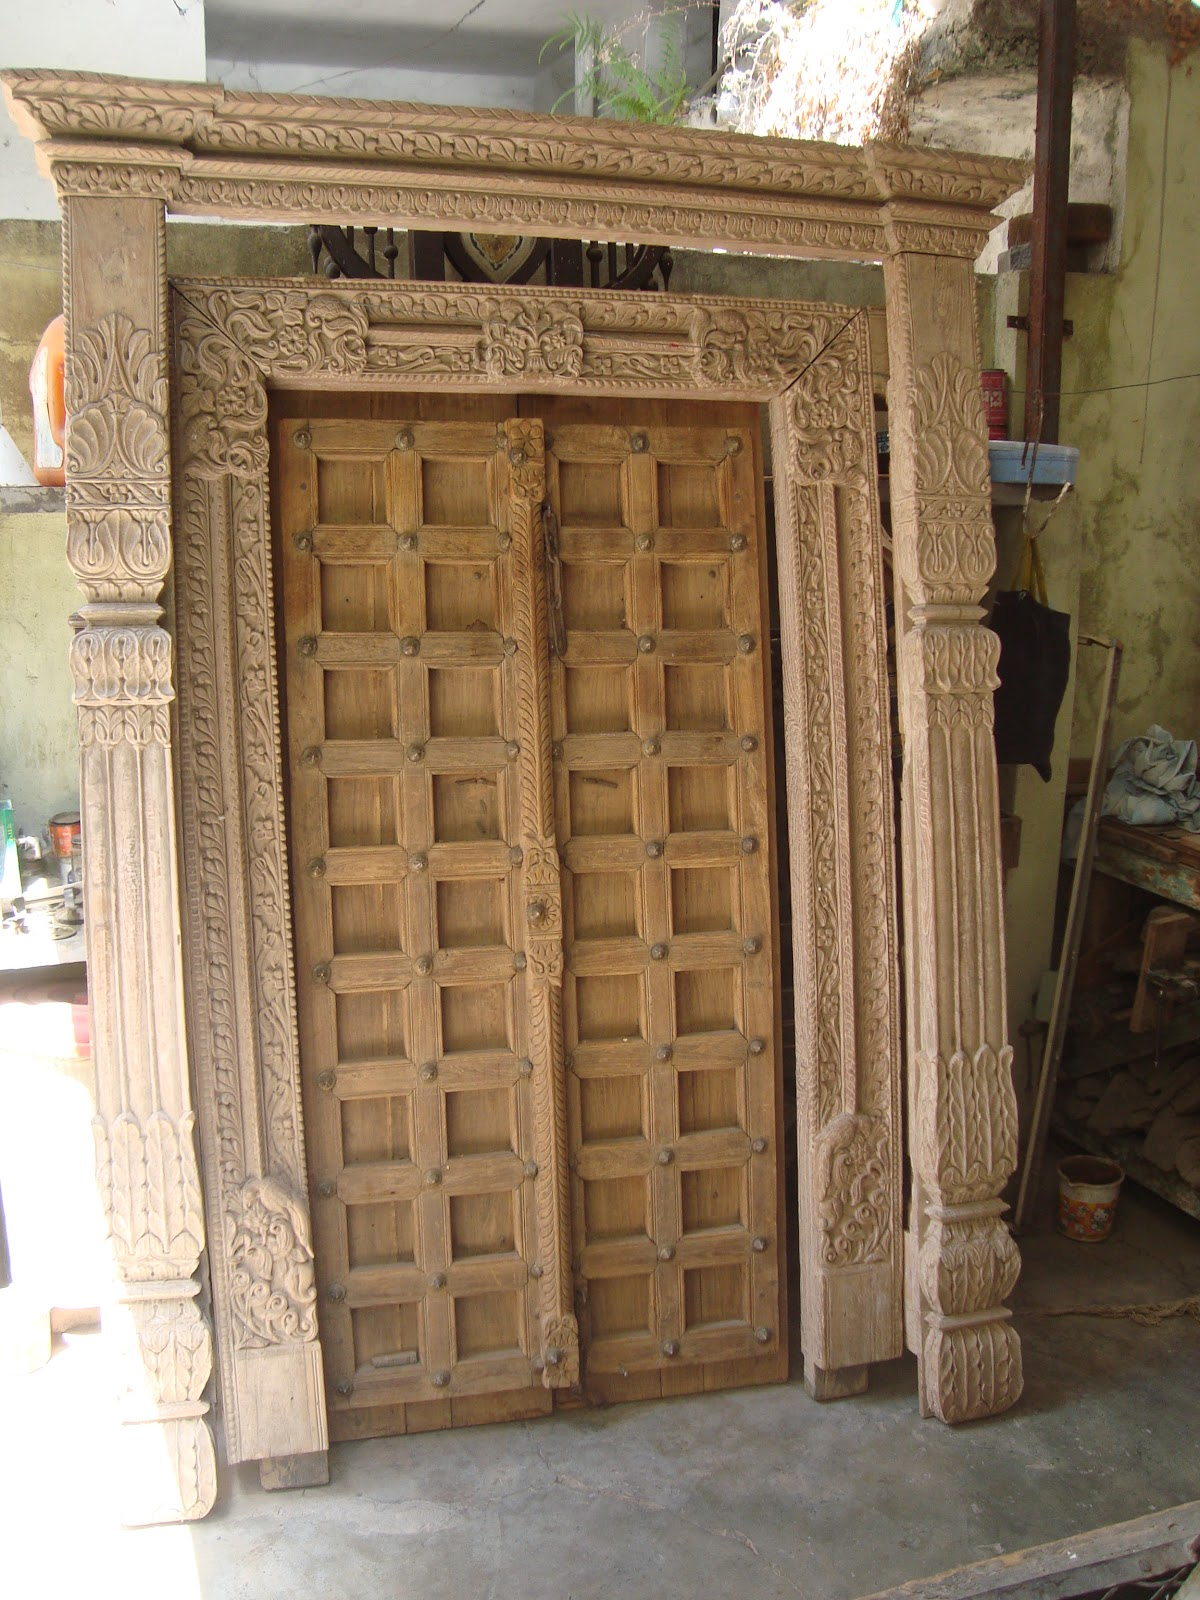 Wooden doors exterior wooden doors for sale for Exterior wood doors for sale